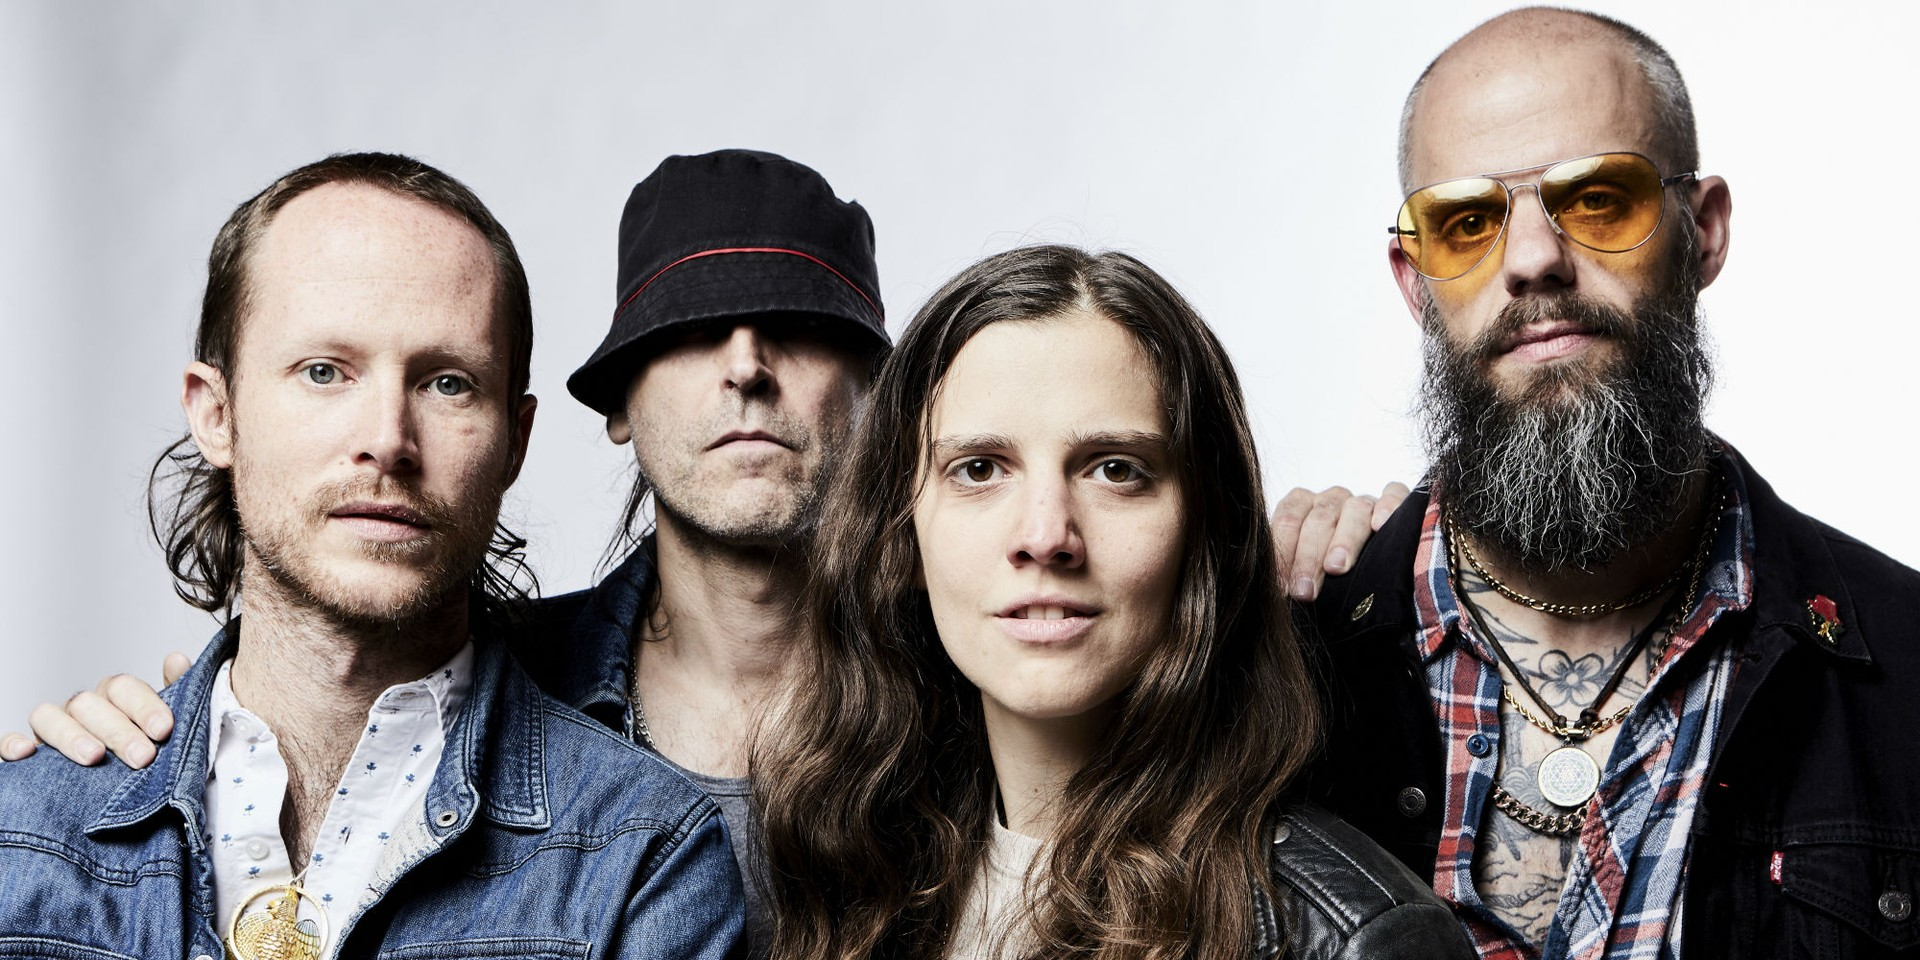 Stream Baroness' new album via NPR's First Listen – listen